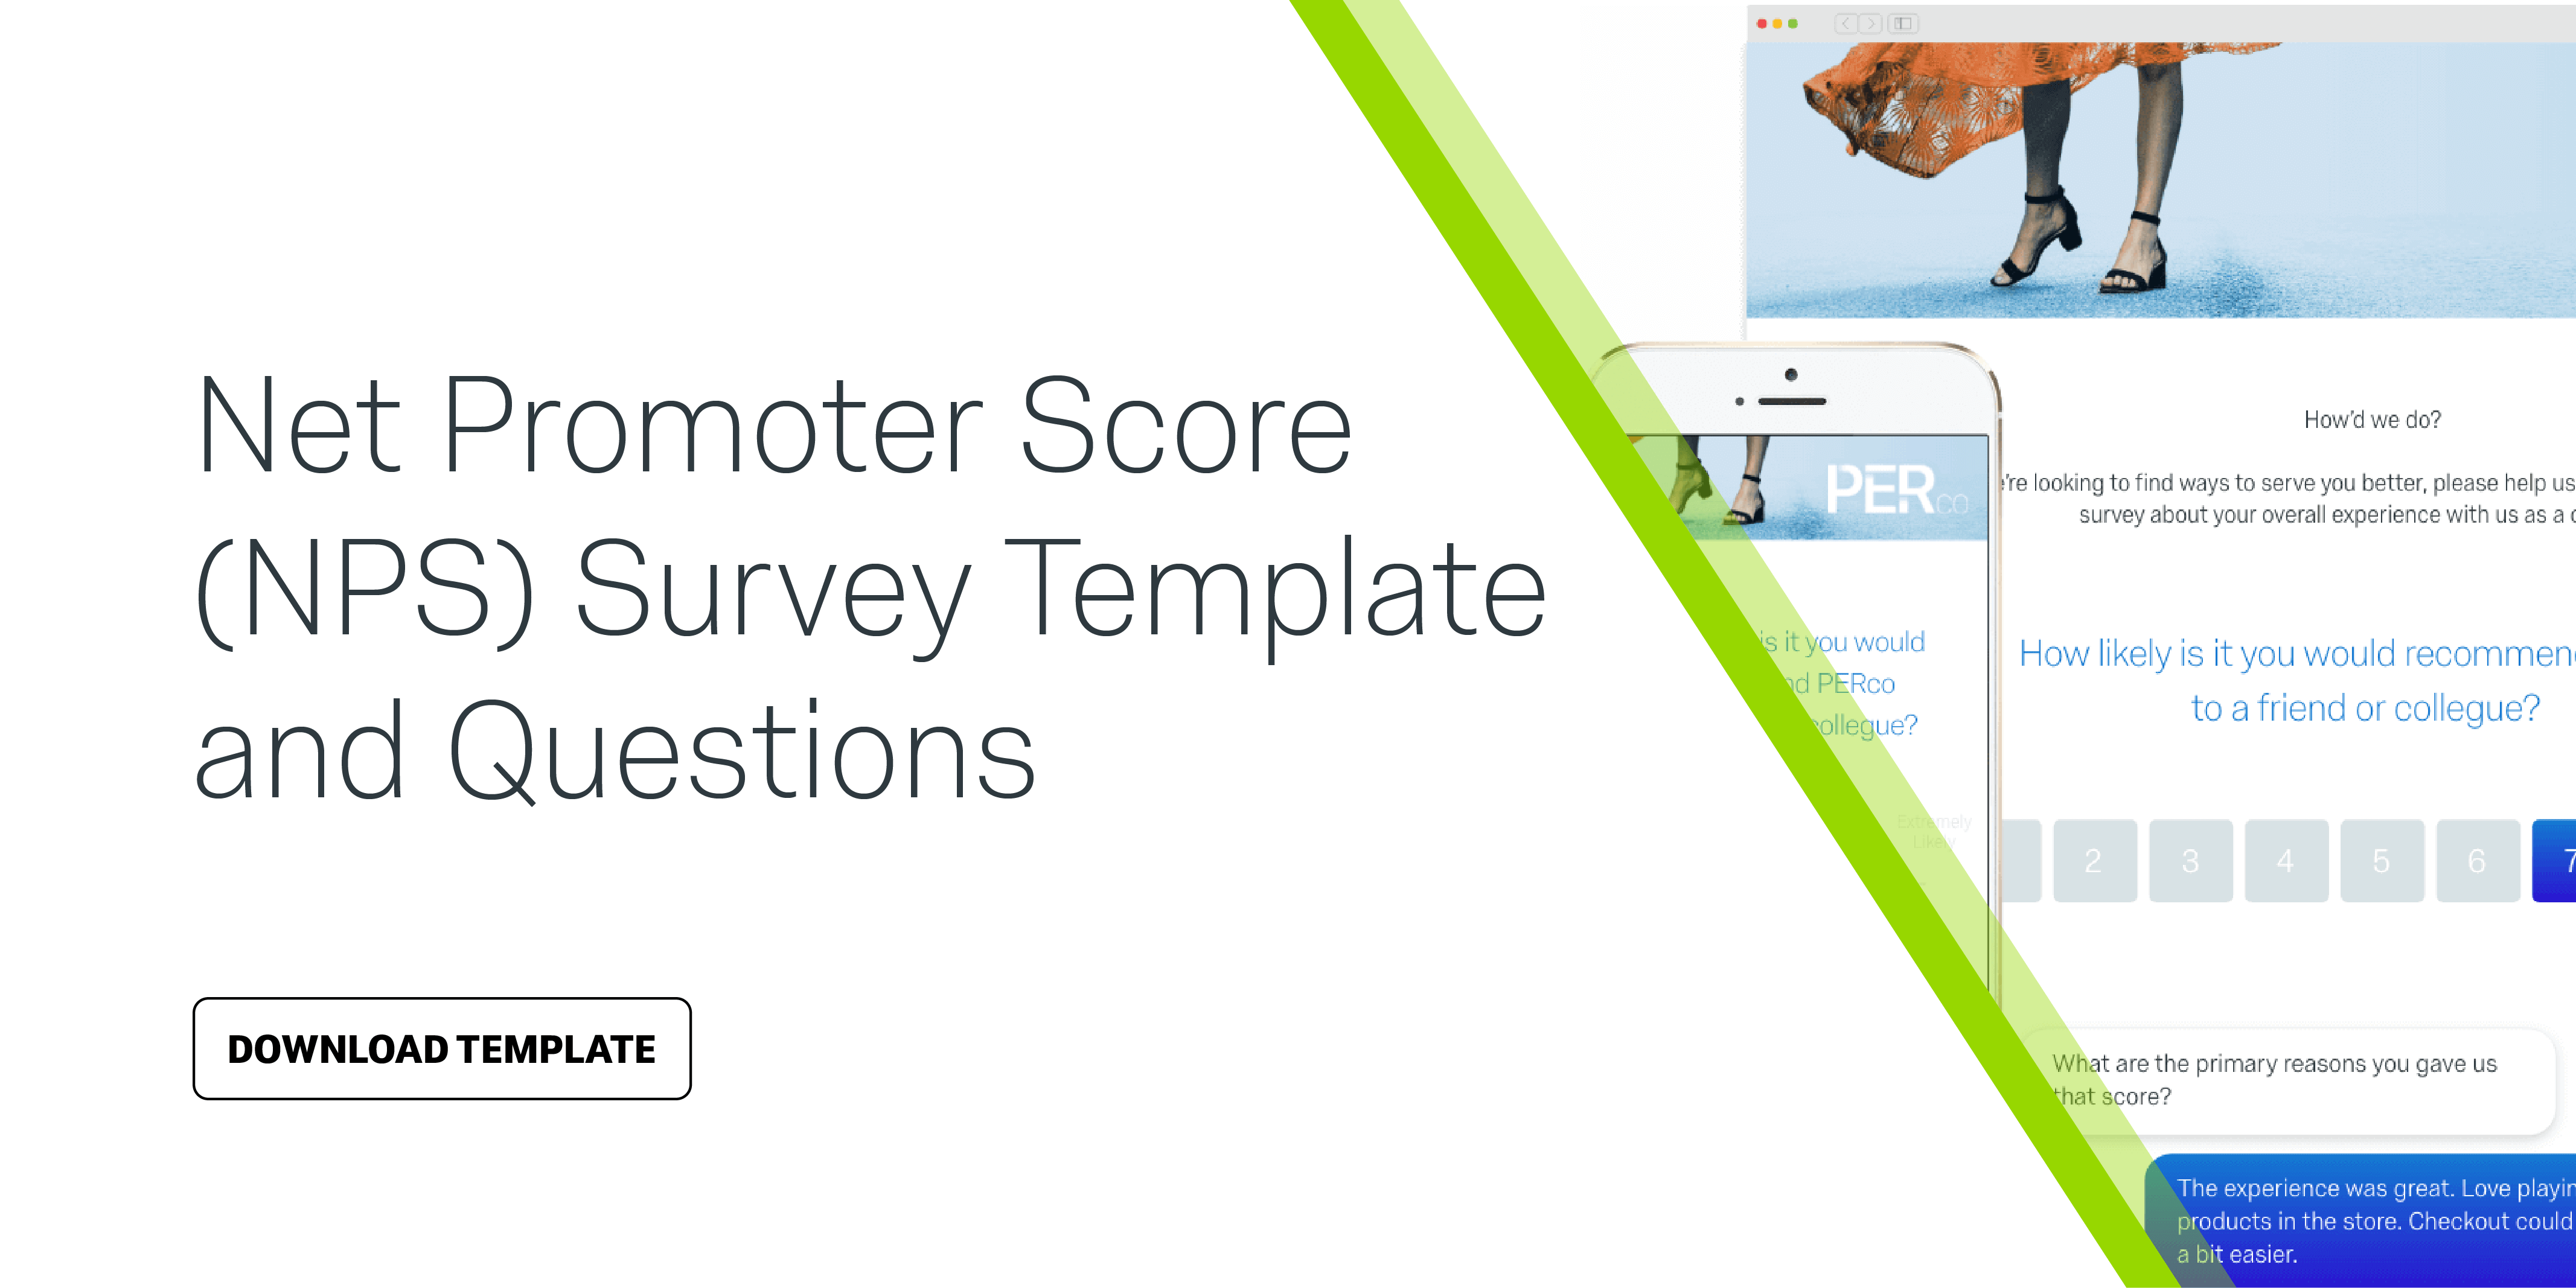 net promoter score nps survey template questions qualtrics